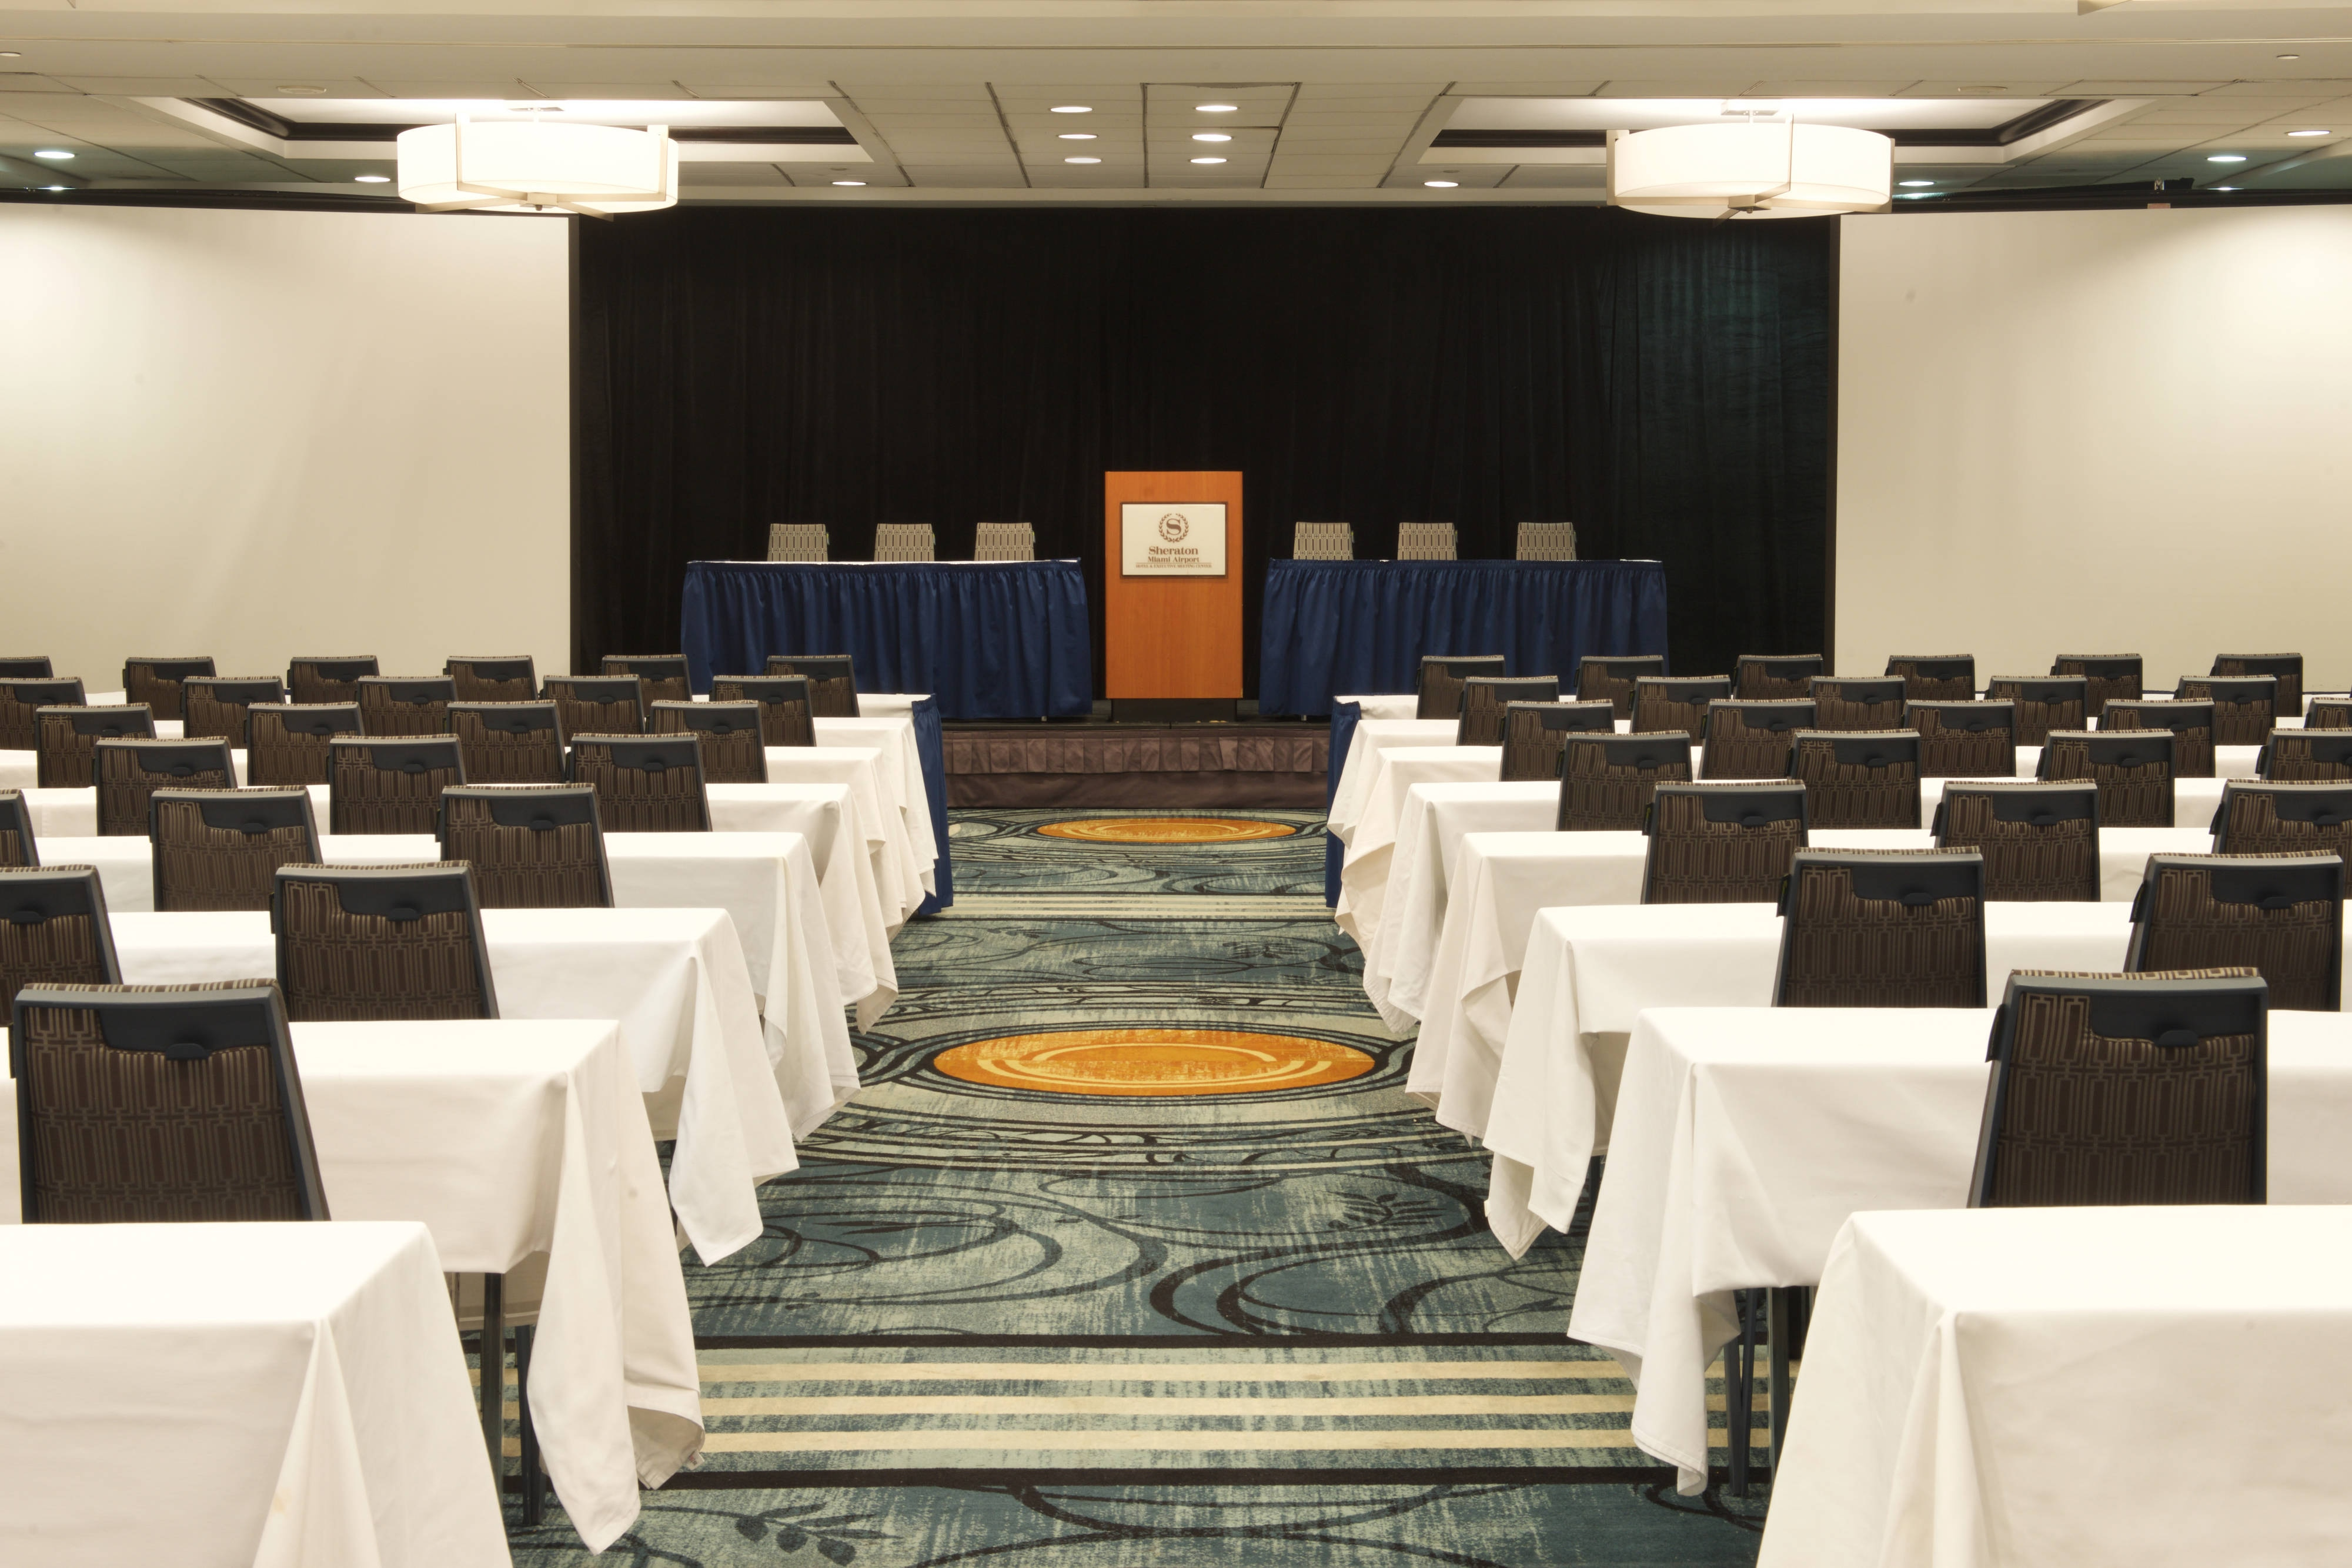 Ball Room Set up Classroom Style Facing Podium Close Up